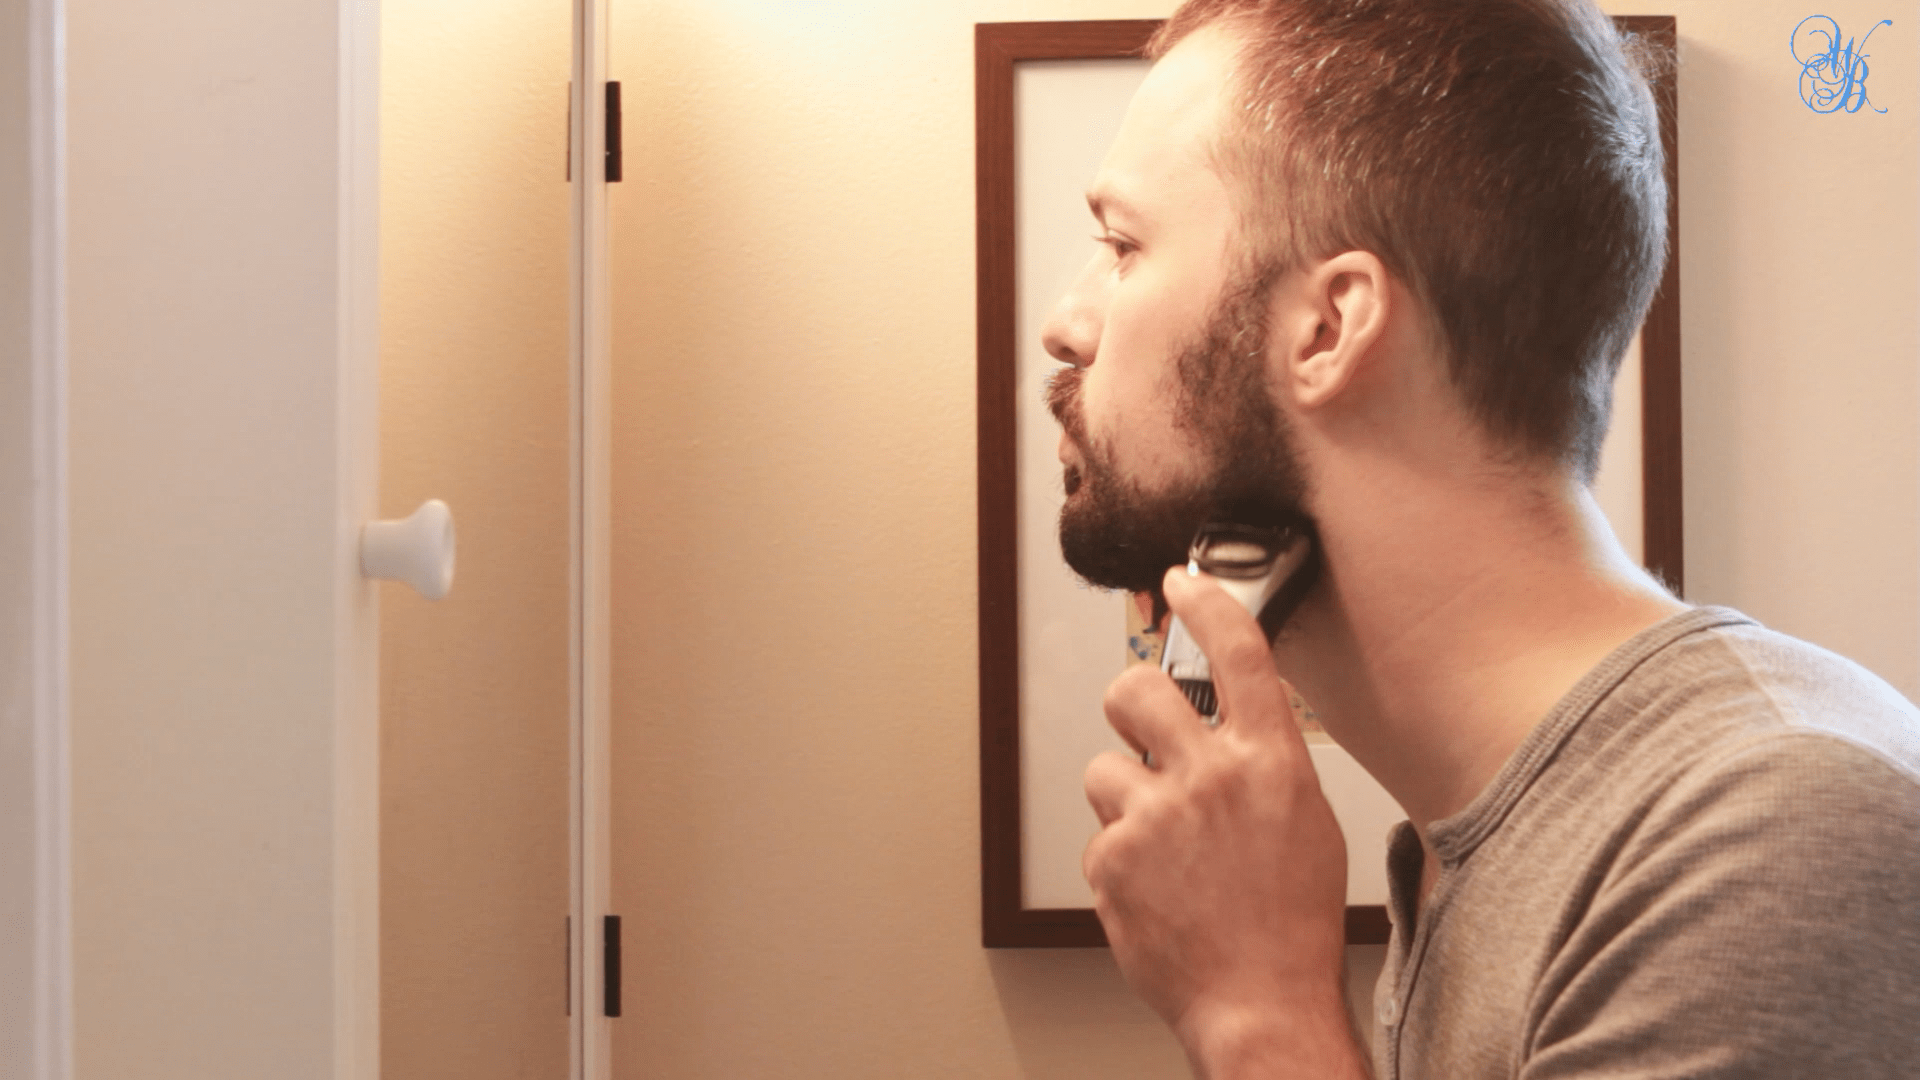 Inspiring! Man Trims Beard In Solidarity With Daughter [VIDEO]